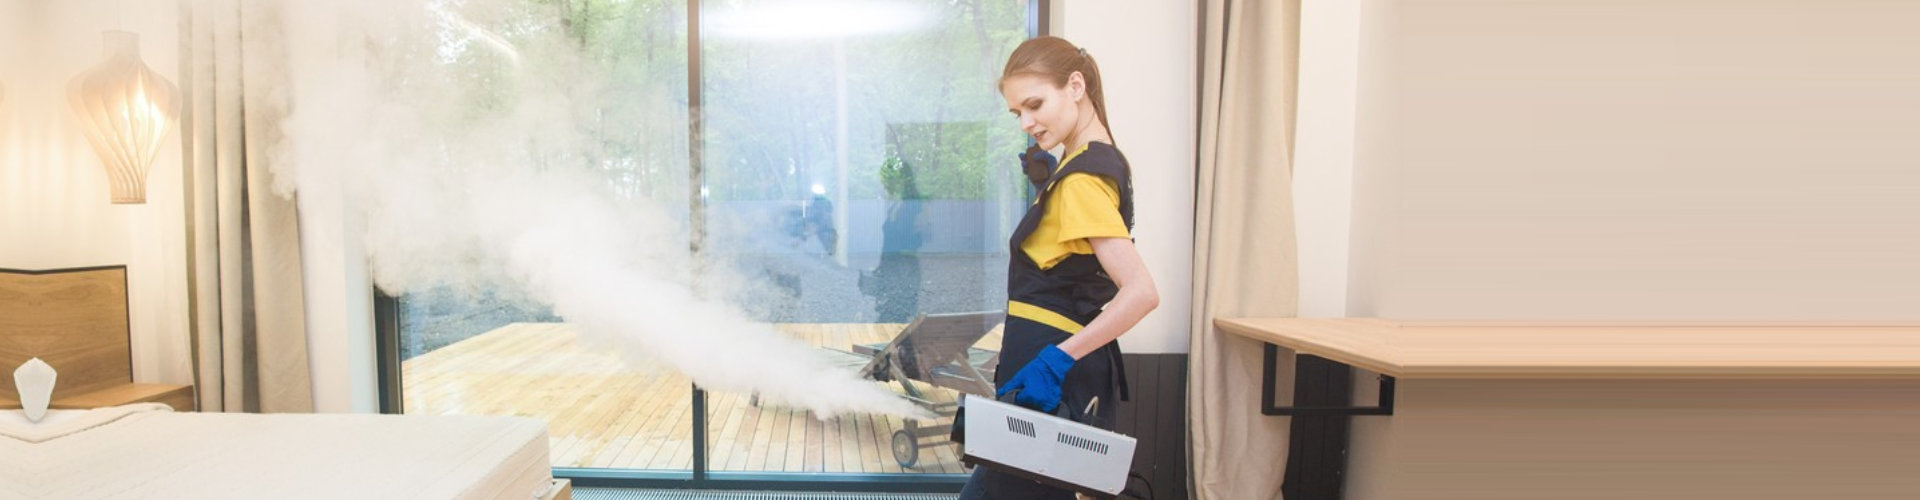 woman in uniform and gloves does the hot steam